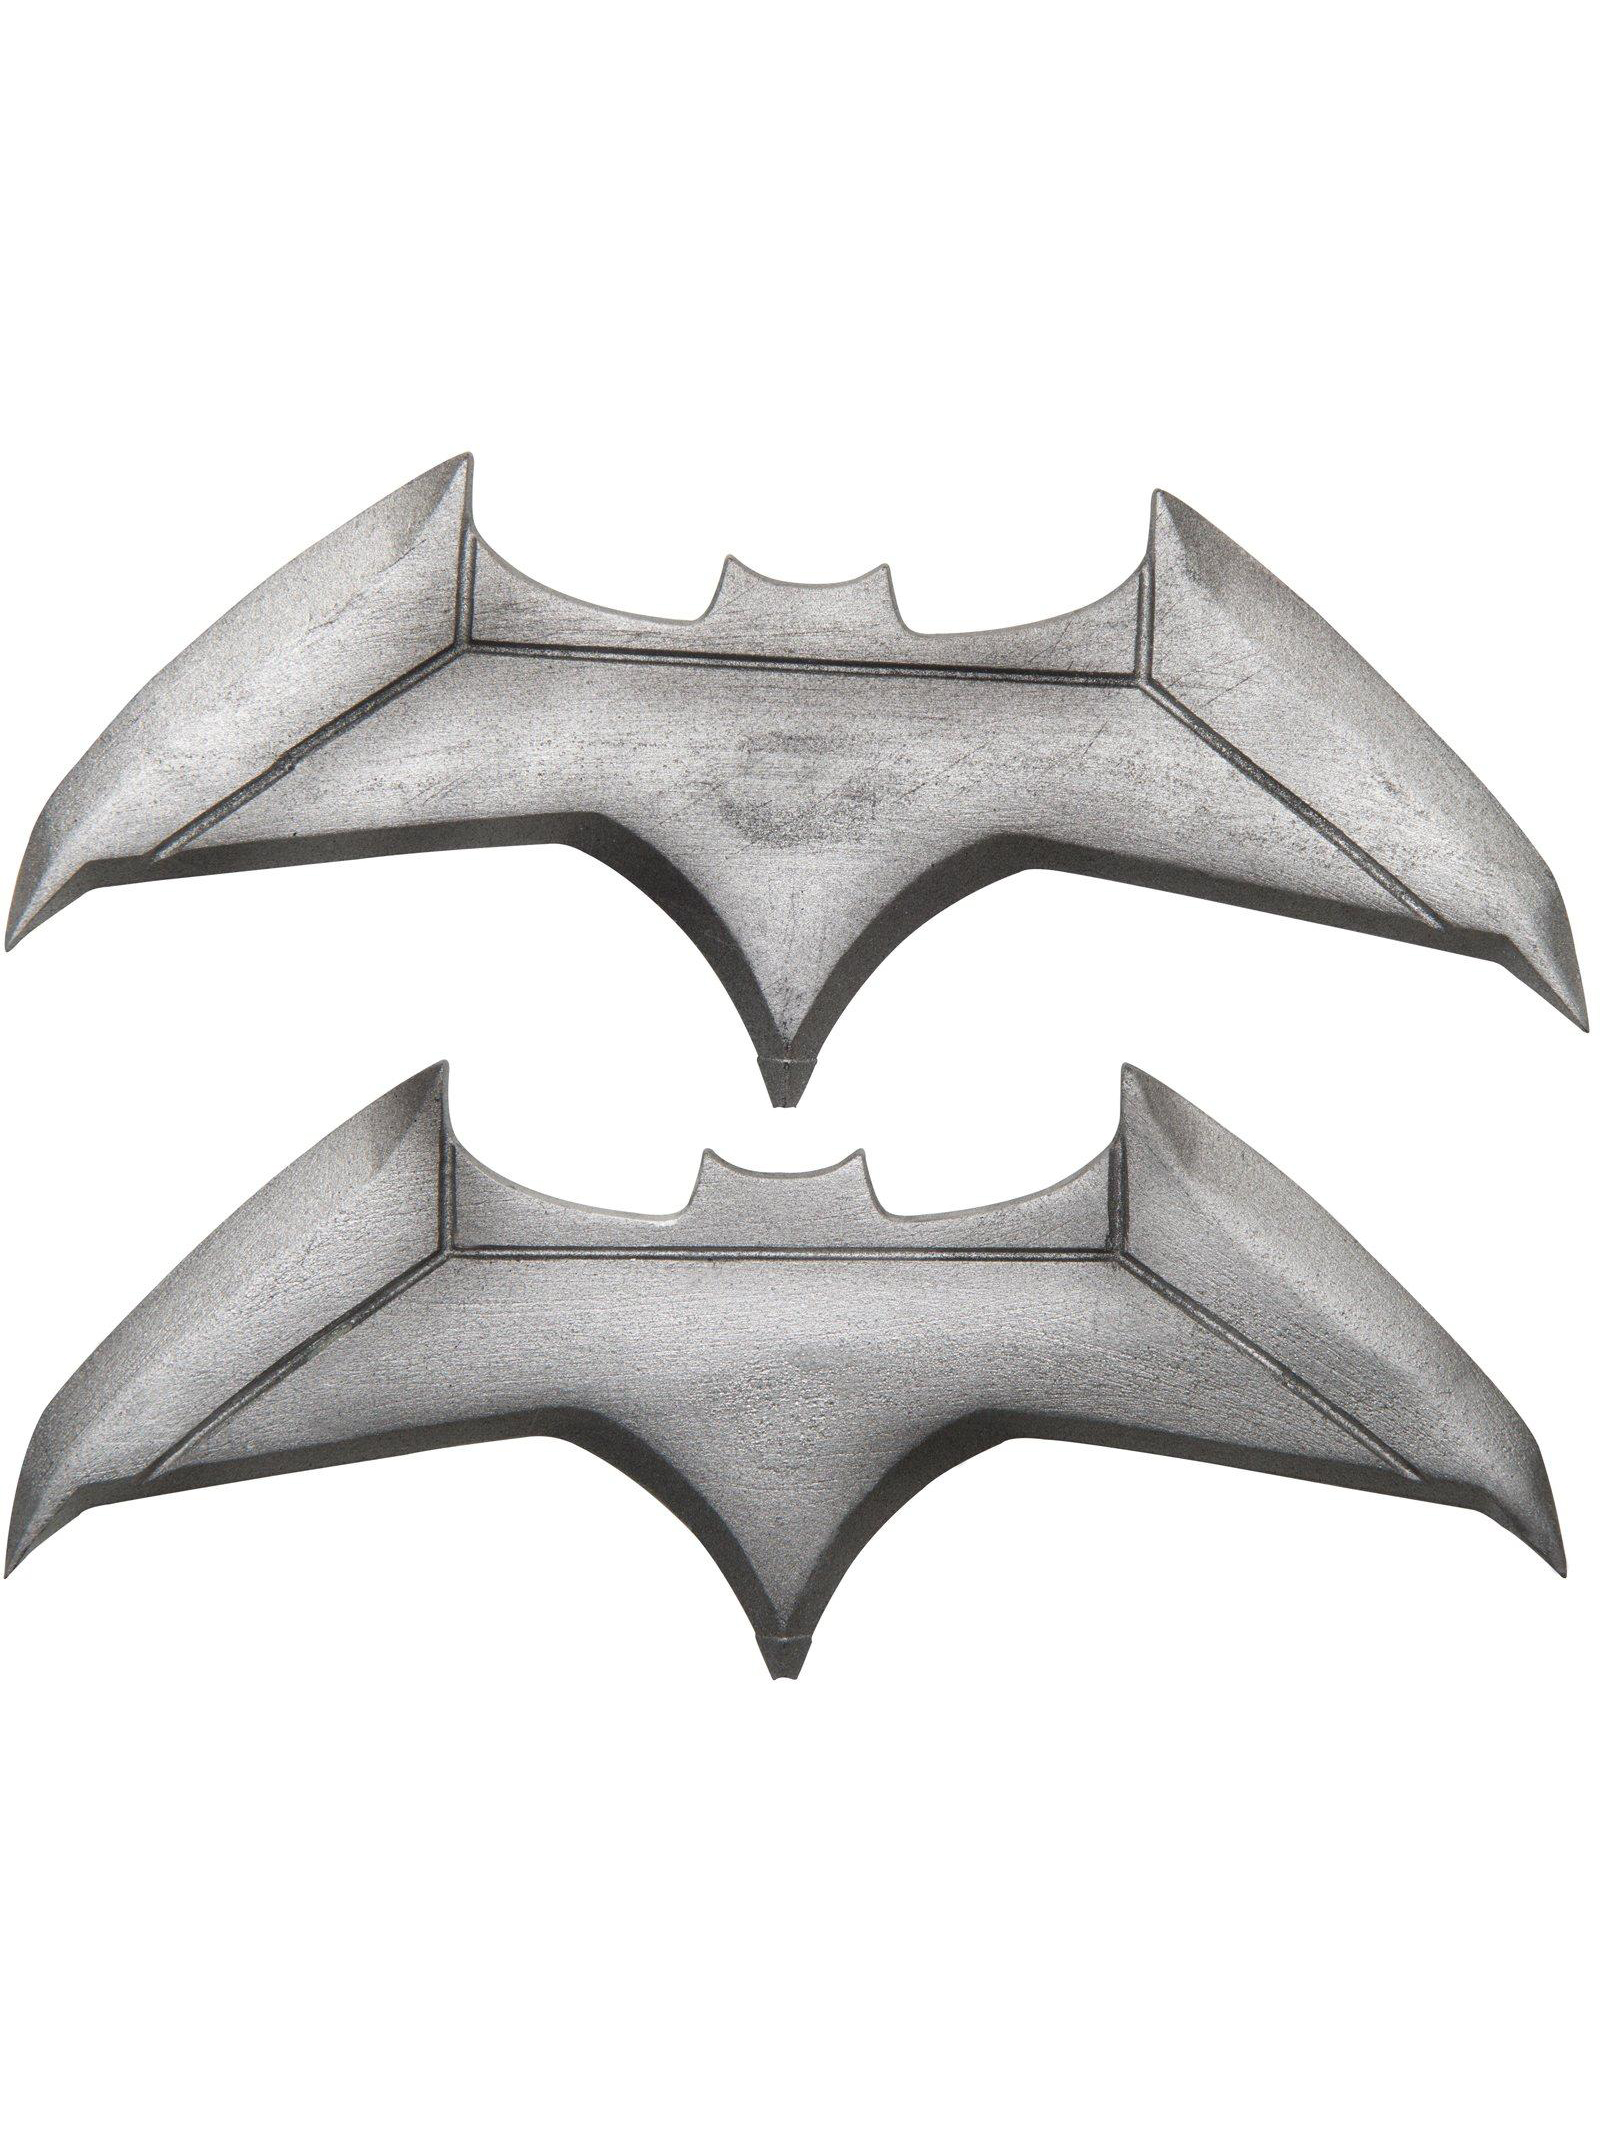 Batman V Superman: Dawn Of Justice - Batman Batarangs 32558R